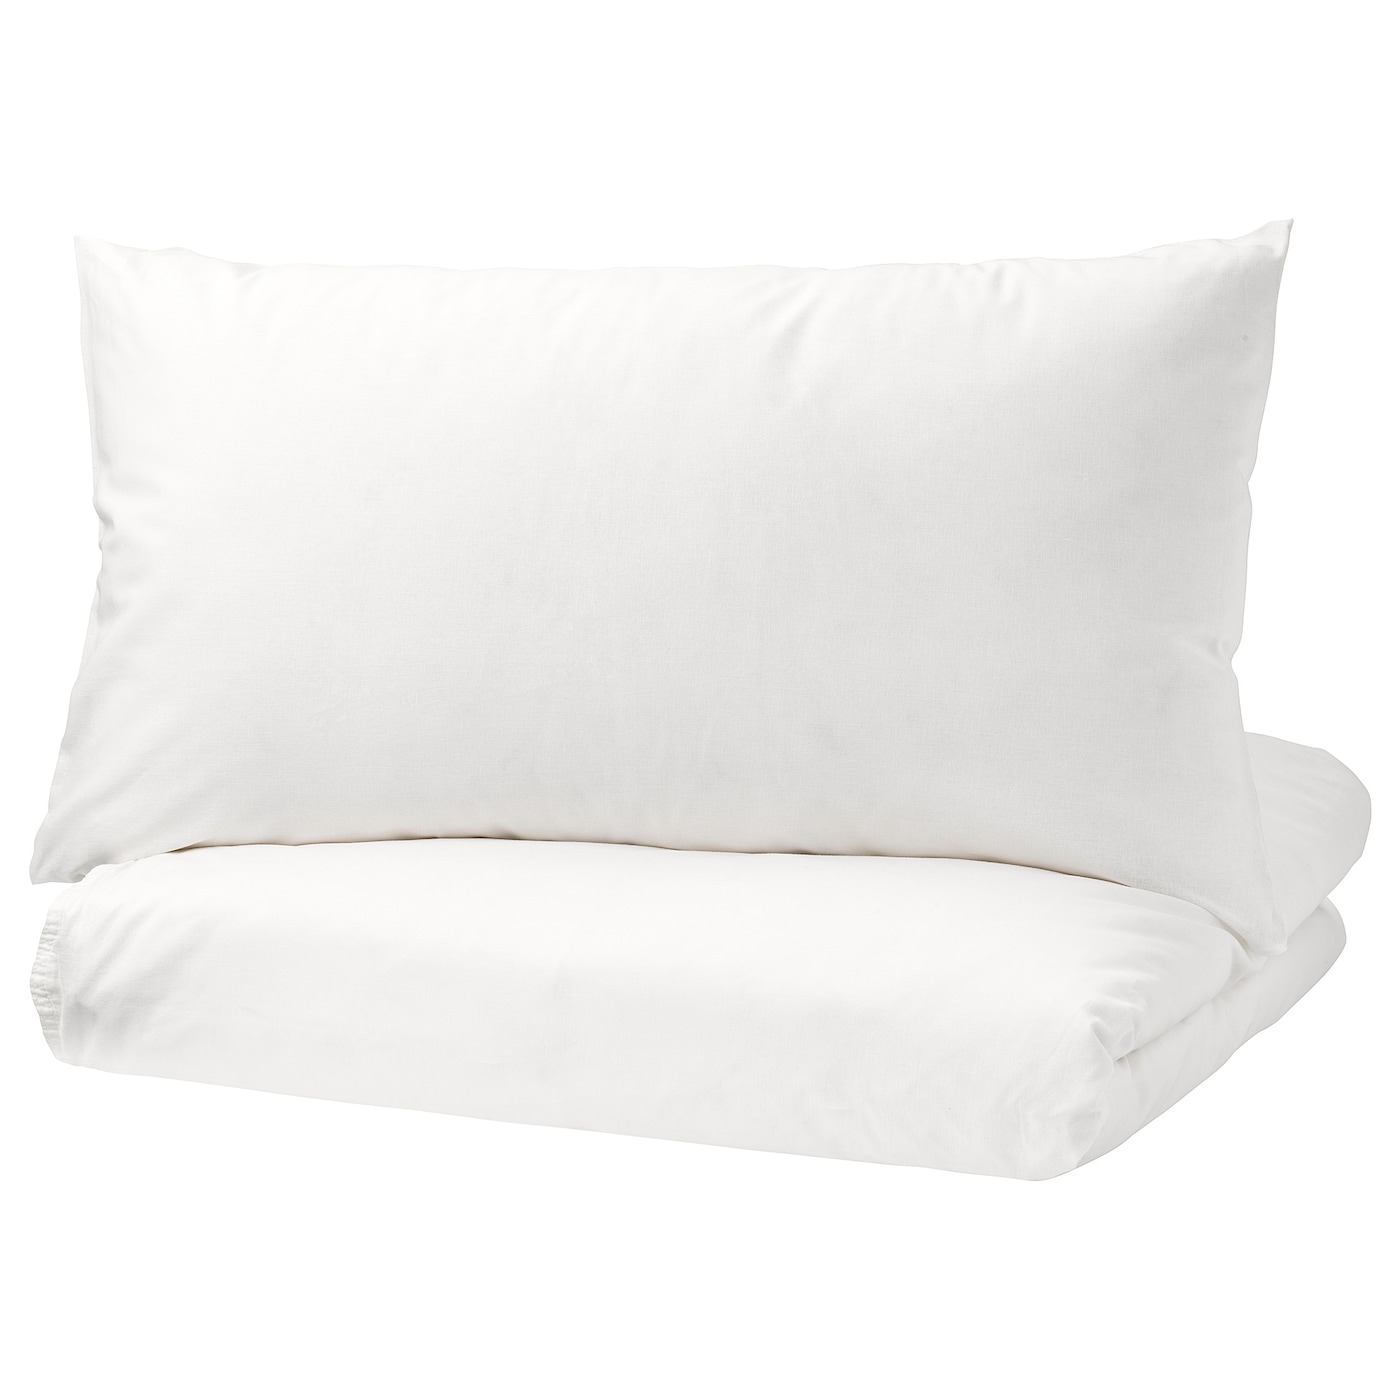 Ikea Ängslilja Quilt Cover And 2 Pillowcases Pure Cotton That Feels Soft Nice Against Your